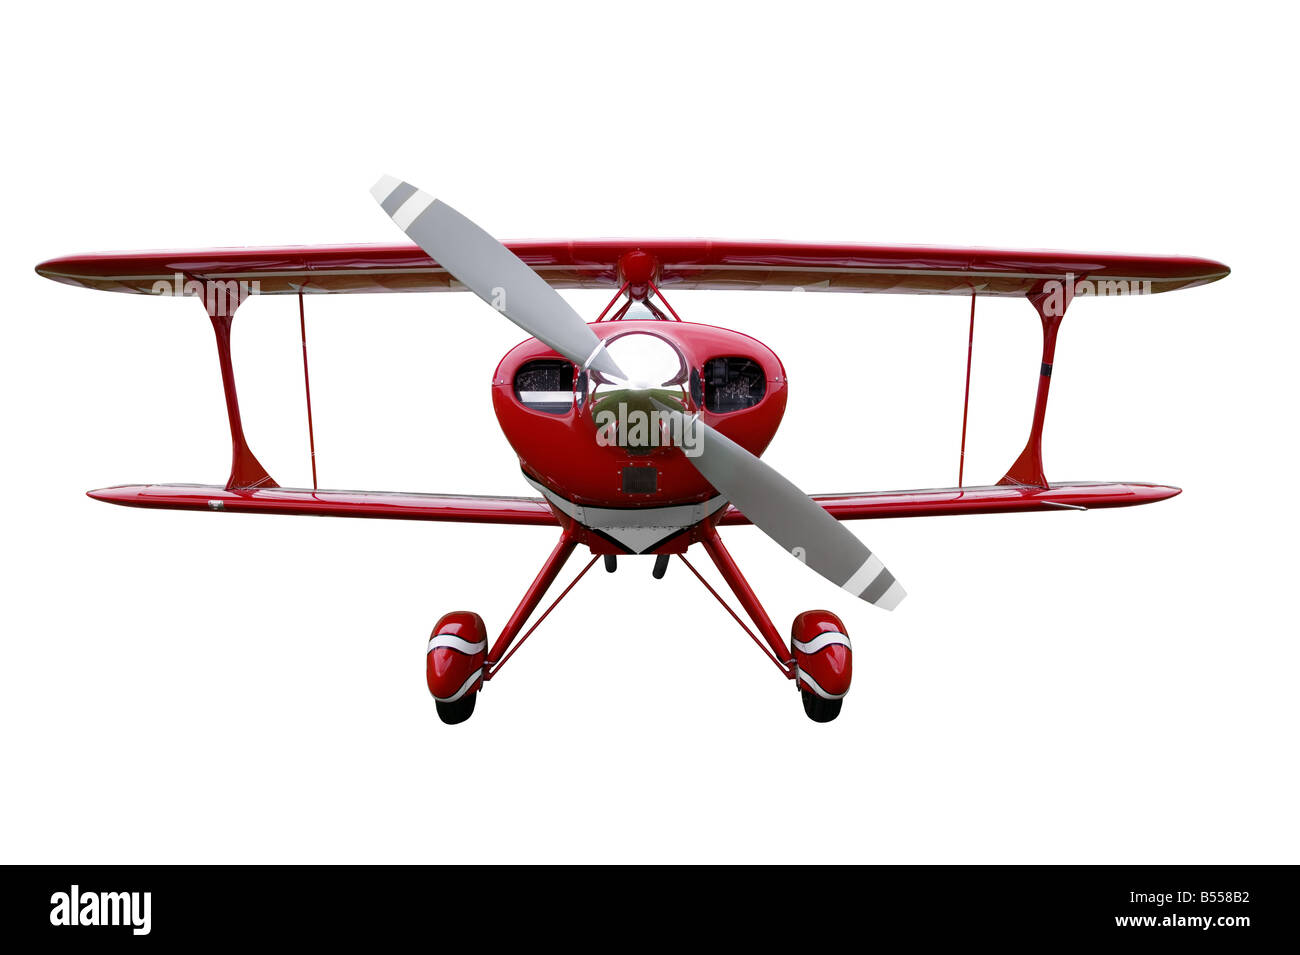 Red biplane cut out - Stock Image